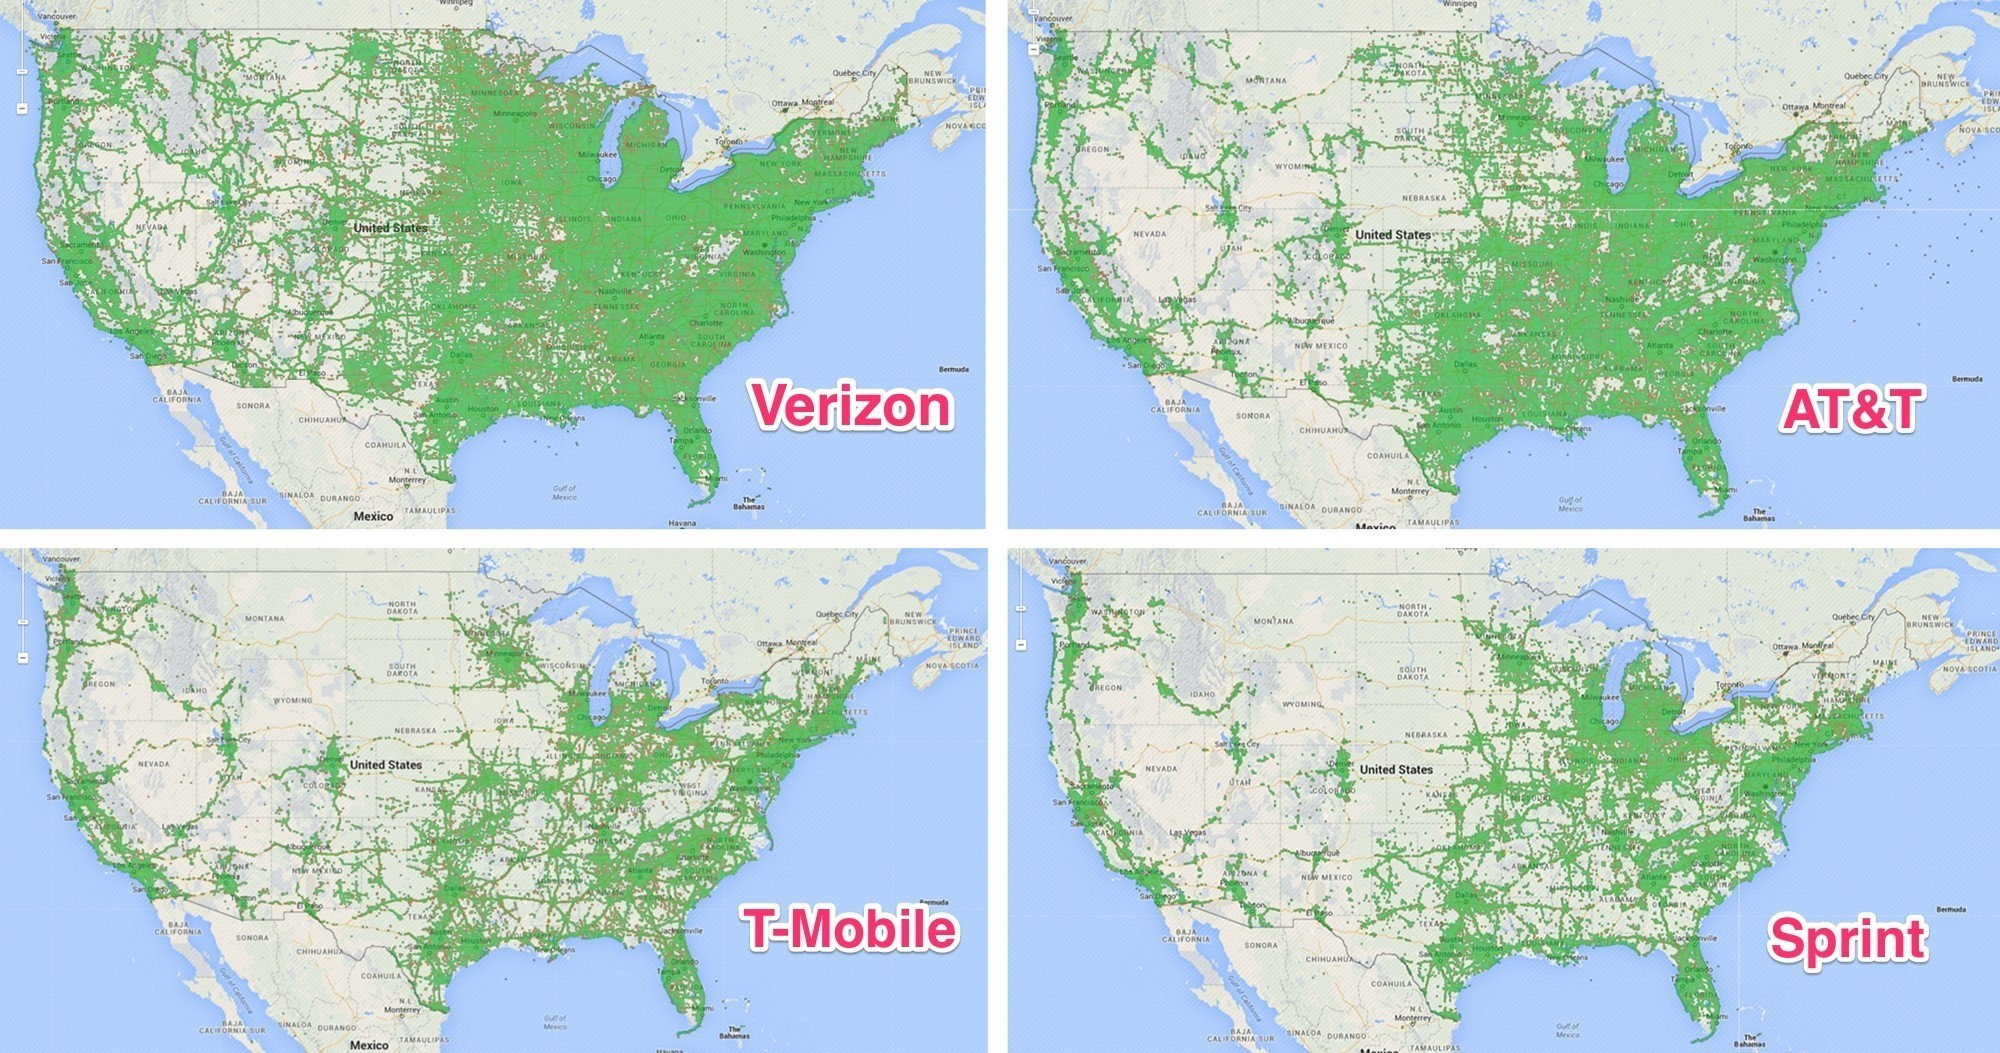 Us Cellular 4G Coverage Map Att National Coverage New Sprint 4G - At&t Coverage Map California